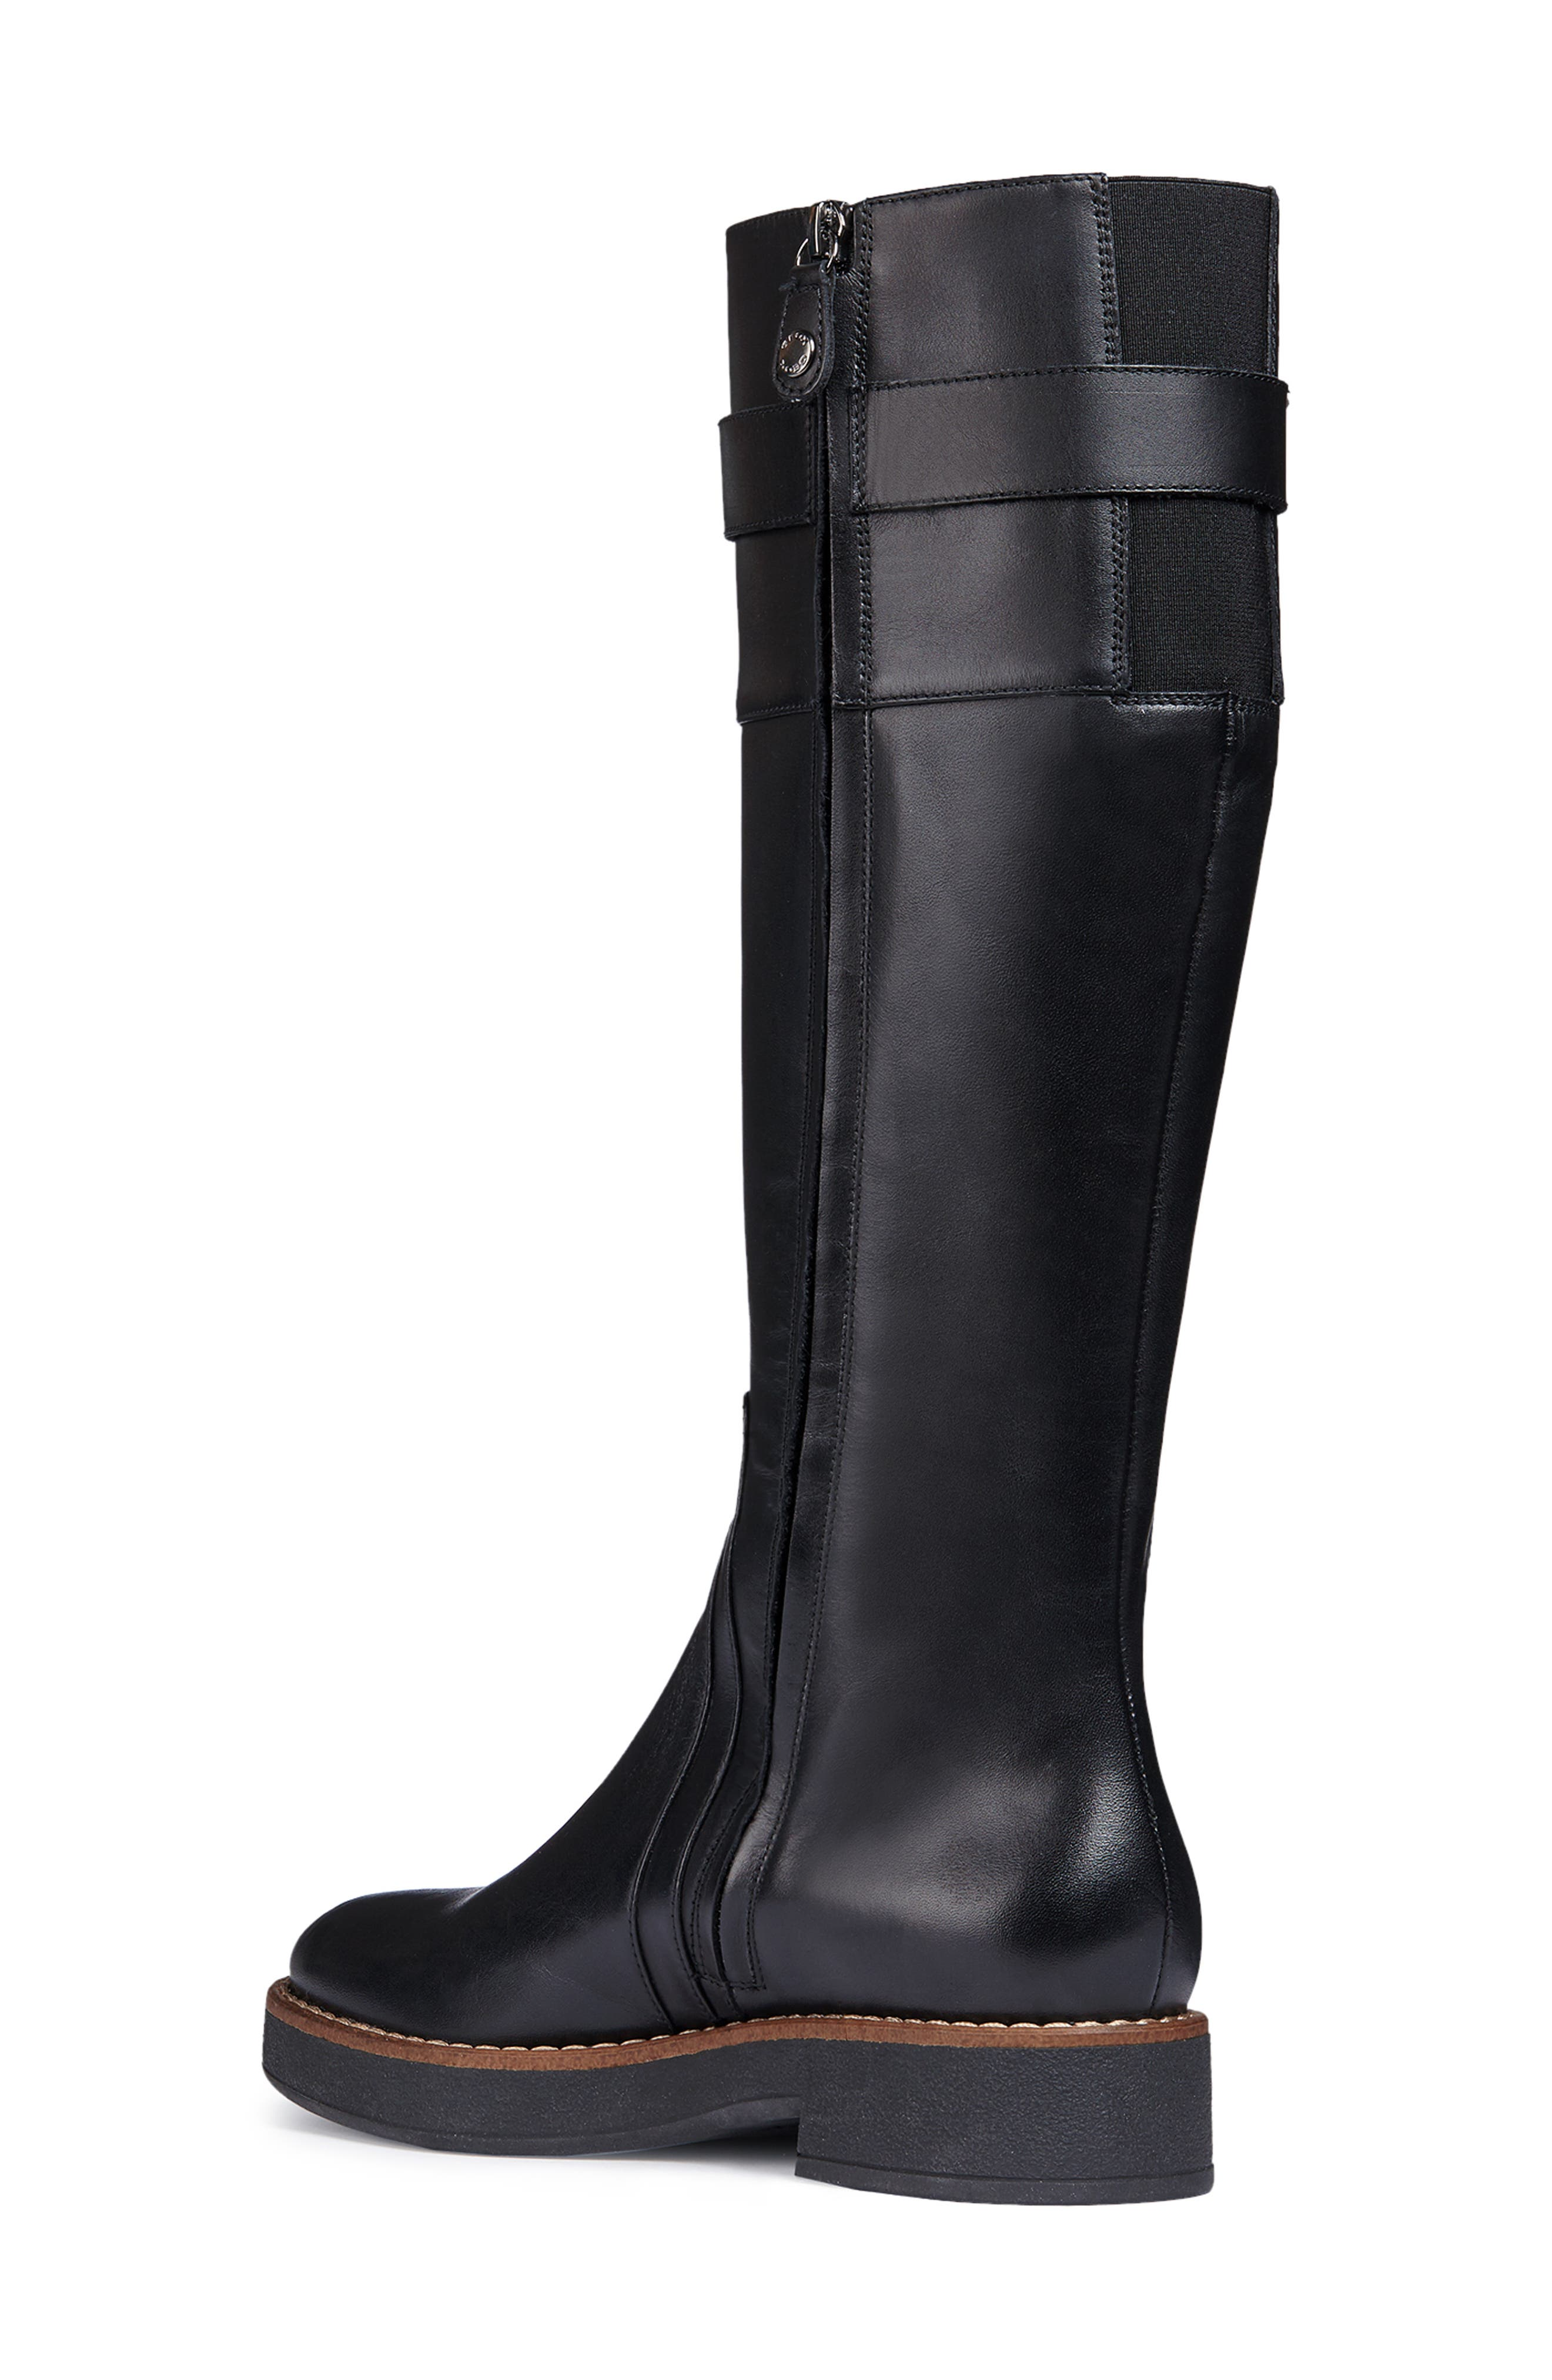 Adrya Knee High Boot,                             Alternate thumbnail 2, color,                             BLACK LEATHER